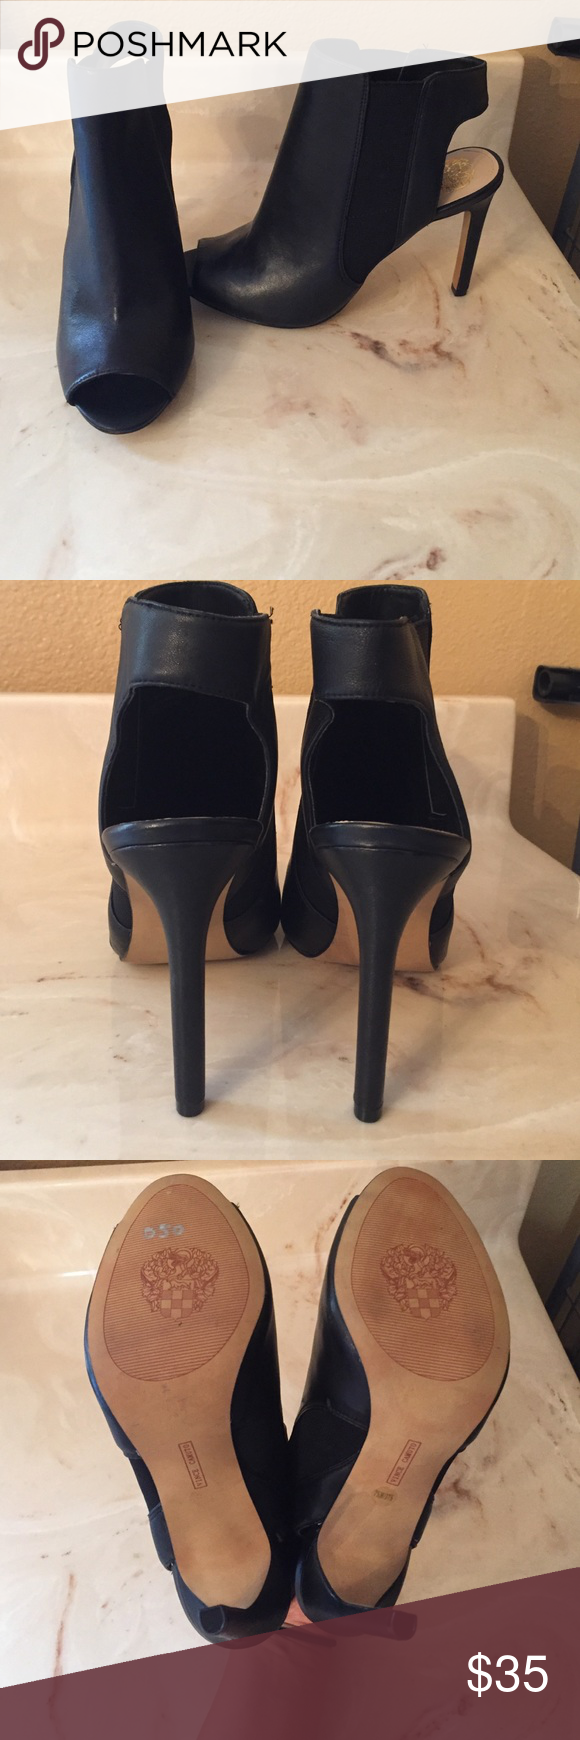 Vince Camuto Heels Only worn once because they fit big. 10/10 no box Vince Camuto Shoes Heeled Boots